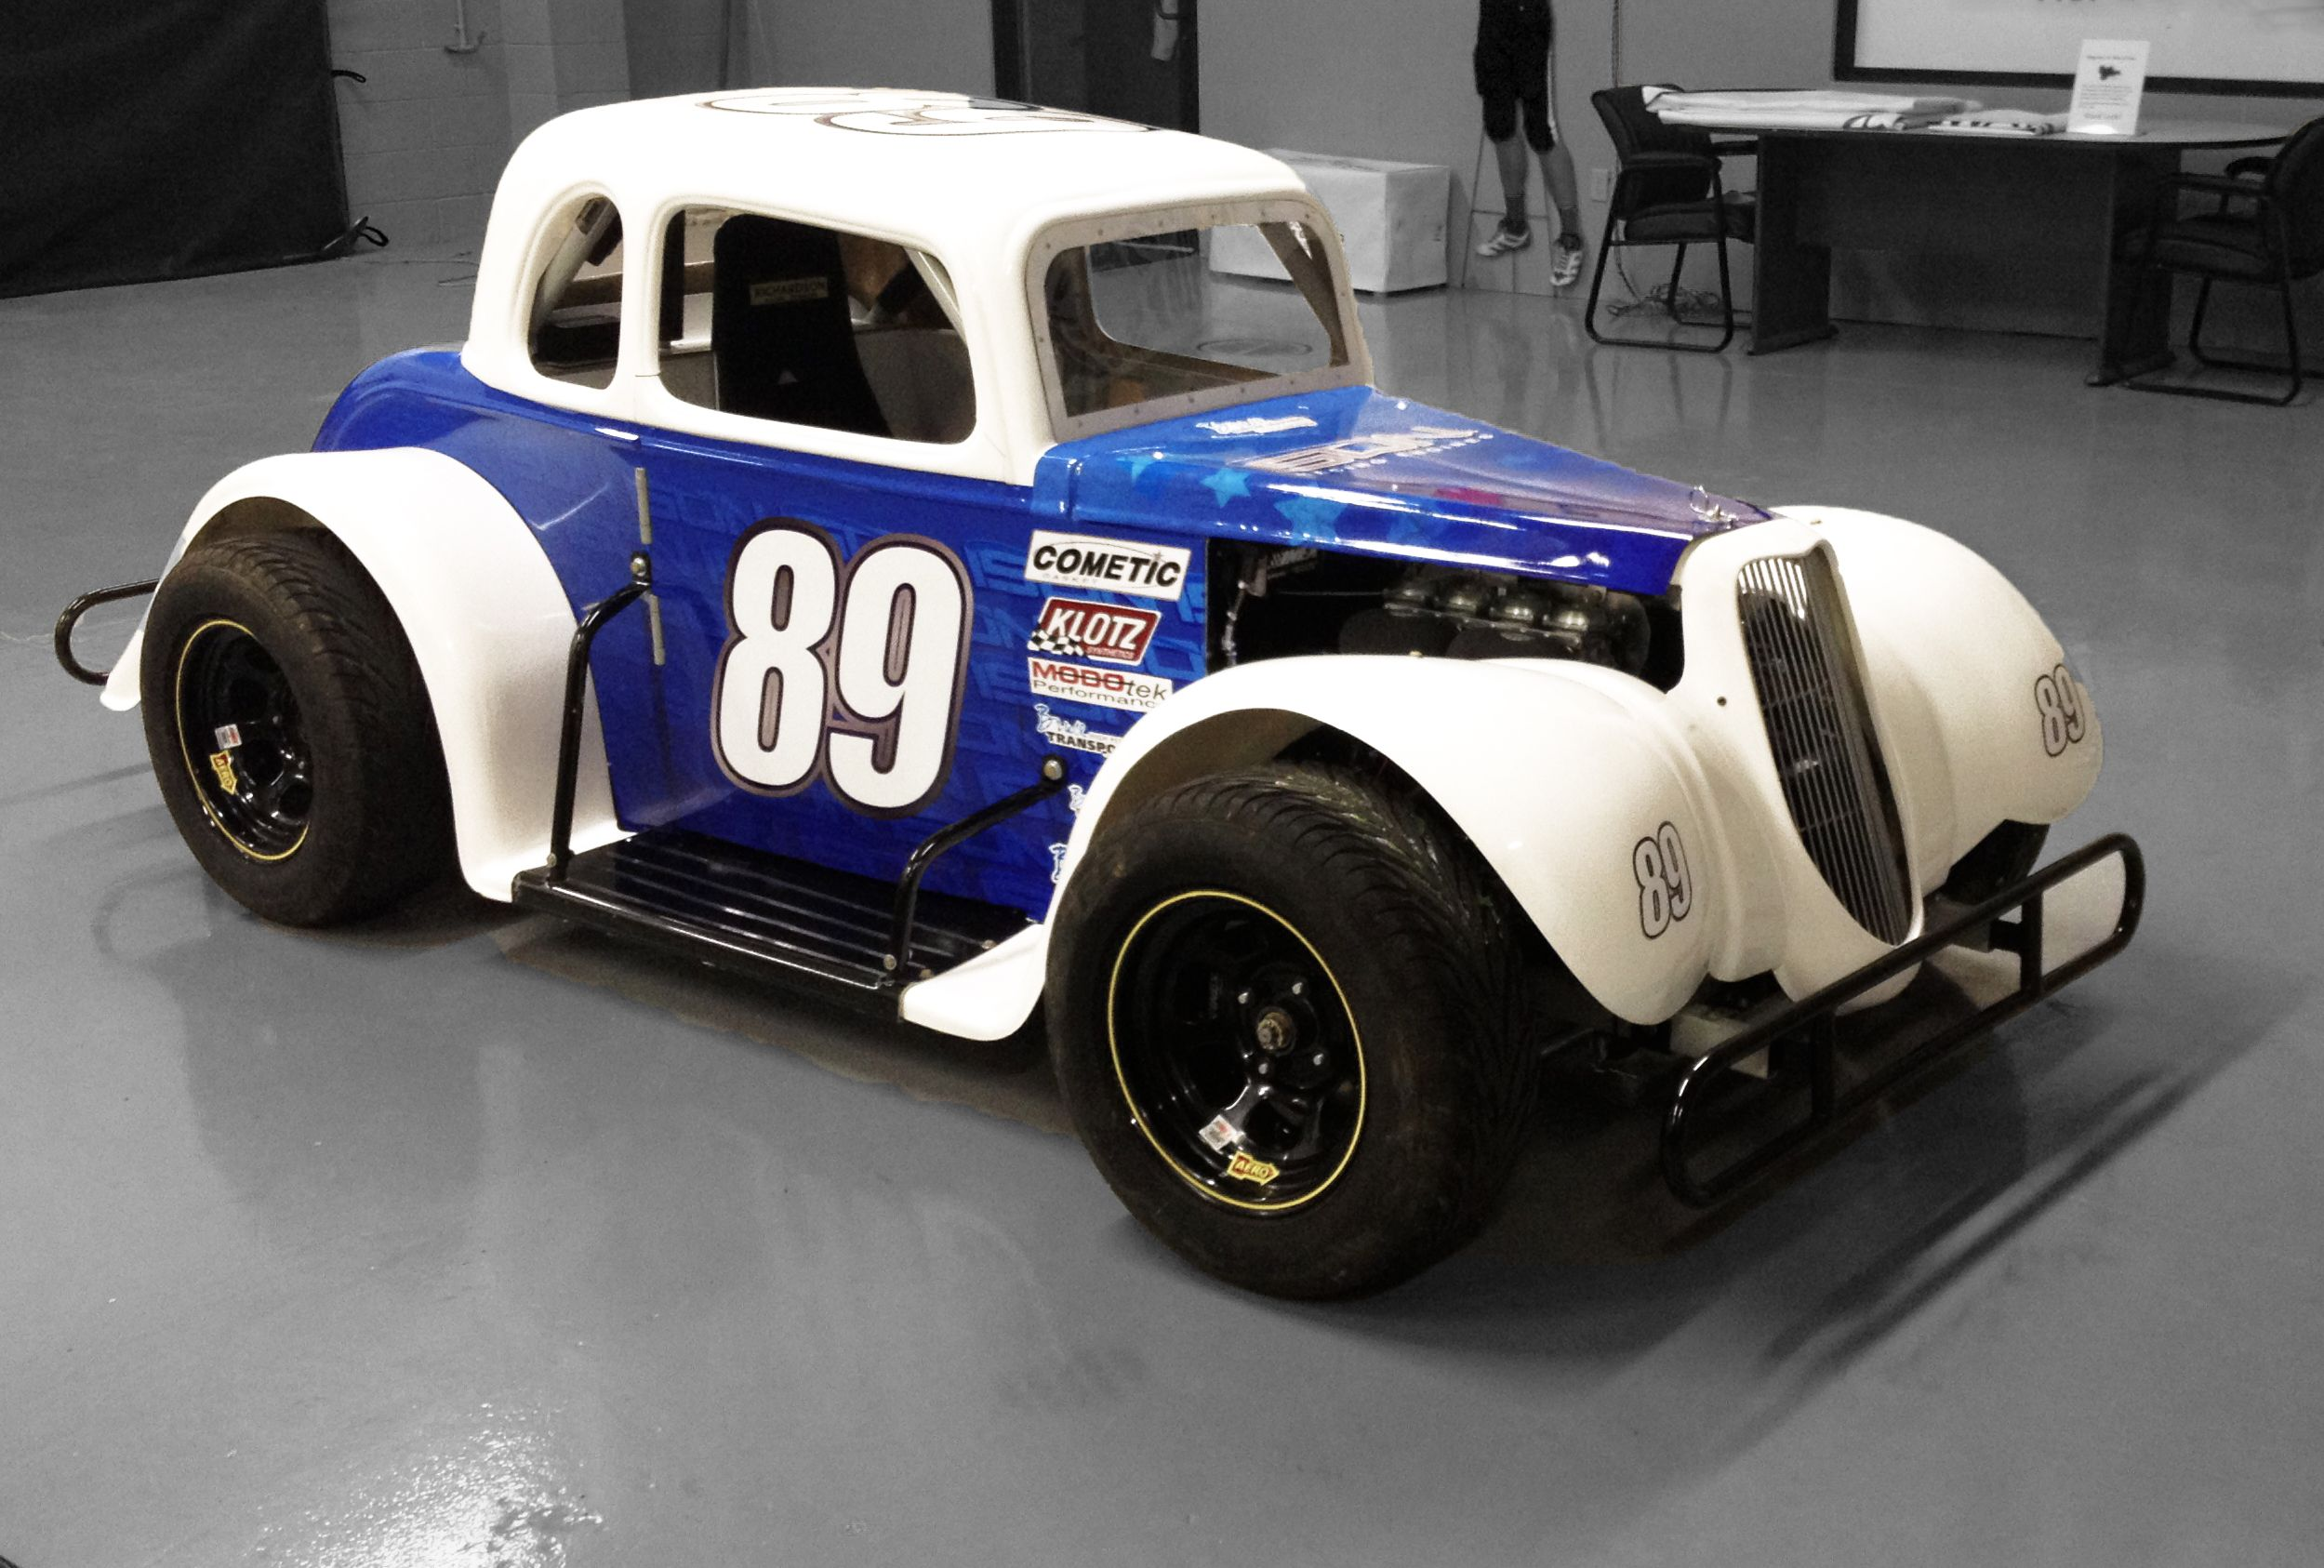 Legend Car Wrap With Vinyl Decals Vehicle Graphics Pinterest - Vinyl decals for race cars